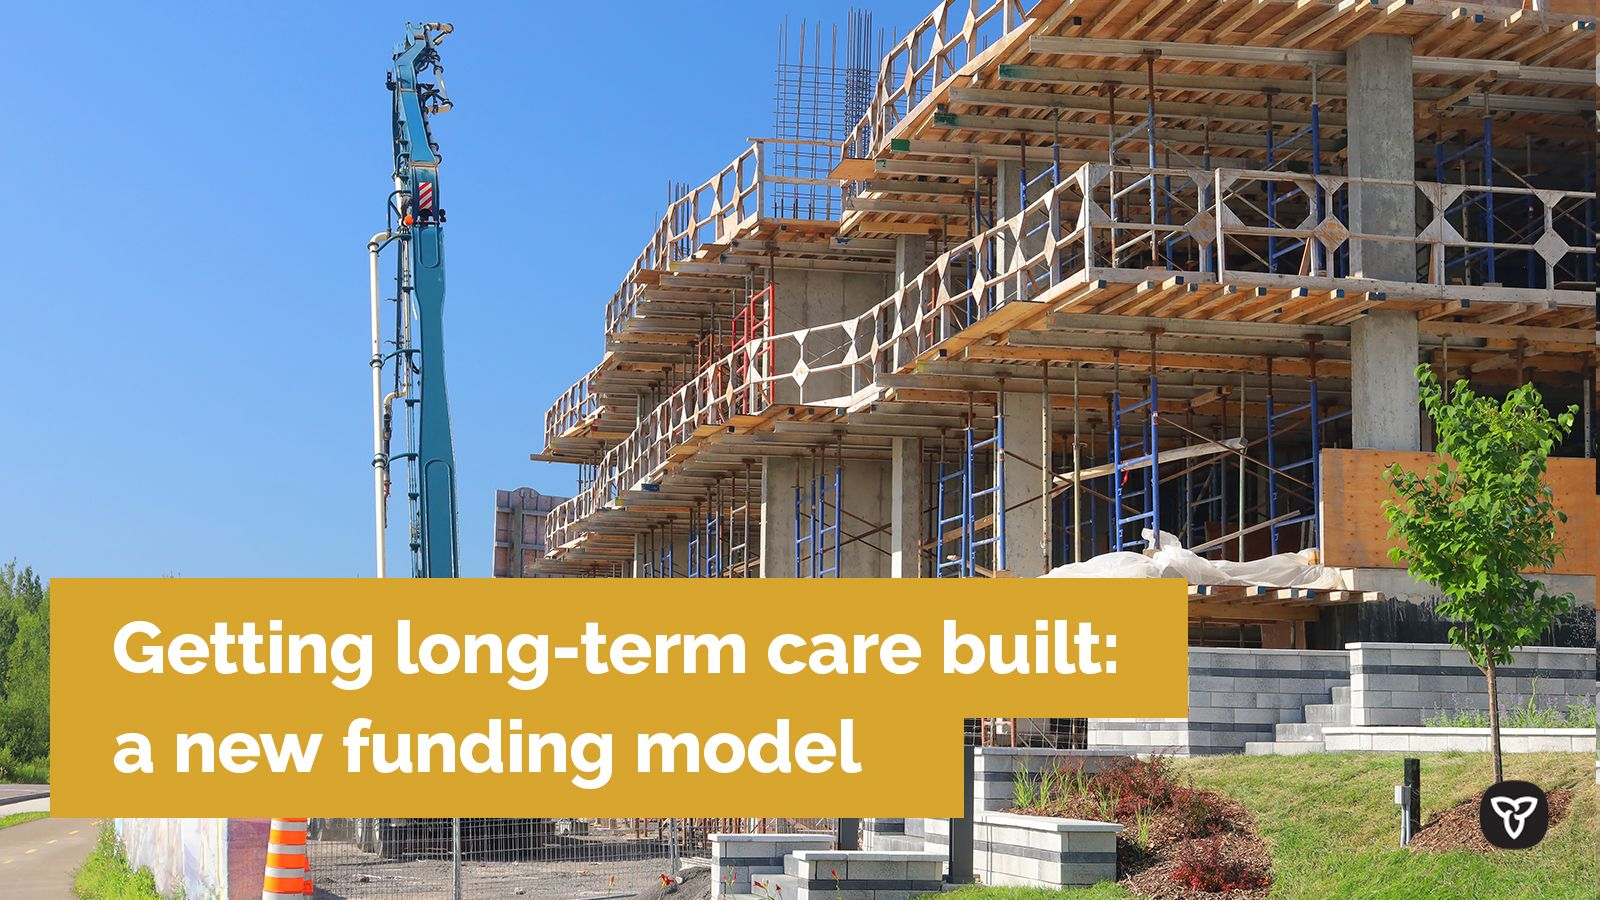 Ontario Accelerating the Development of Long-Term Care Homes